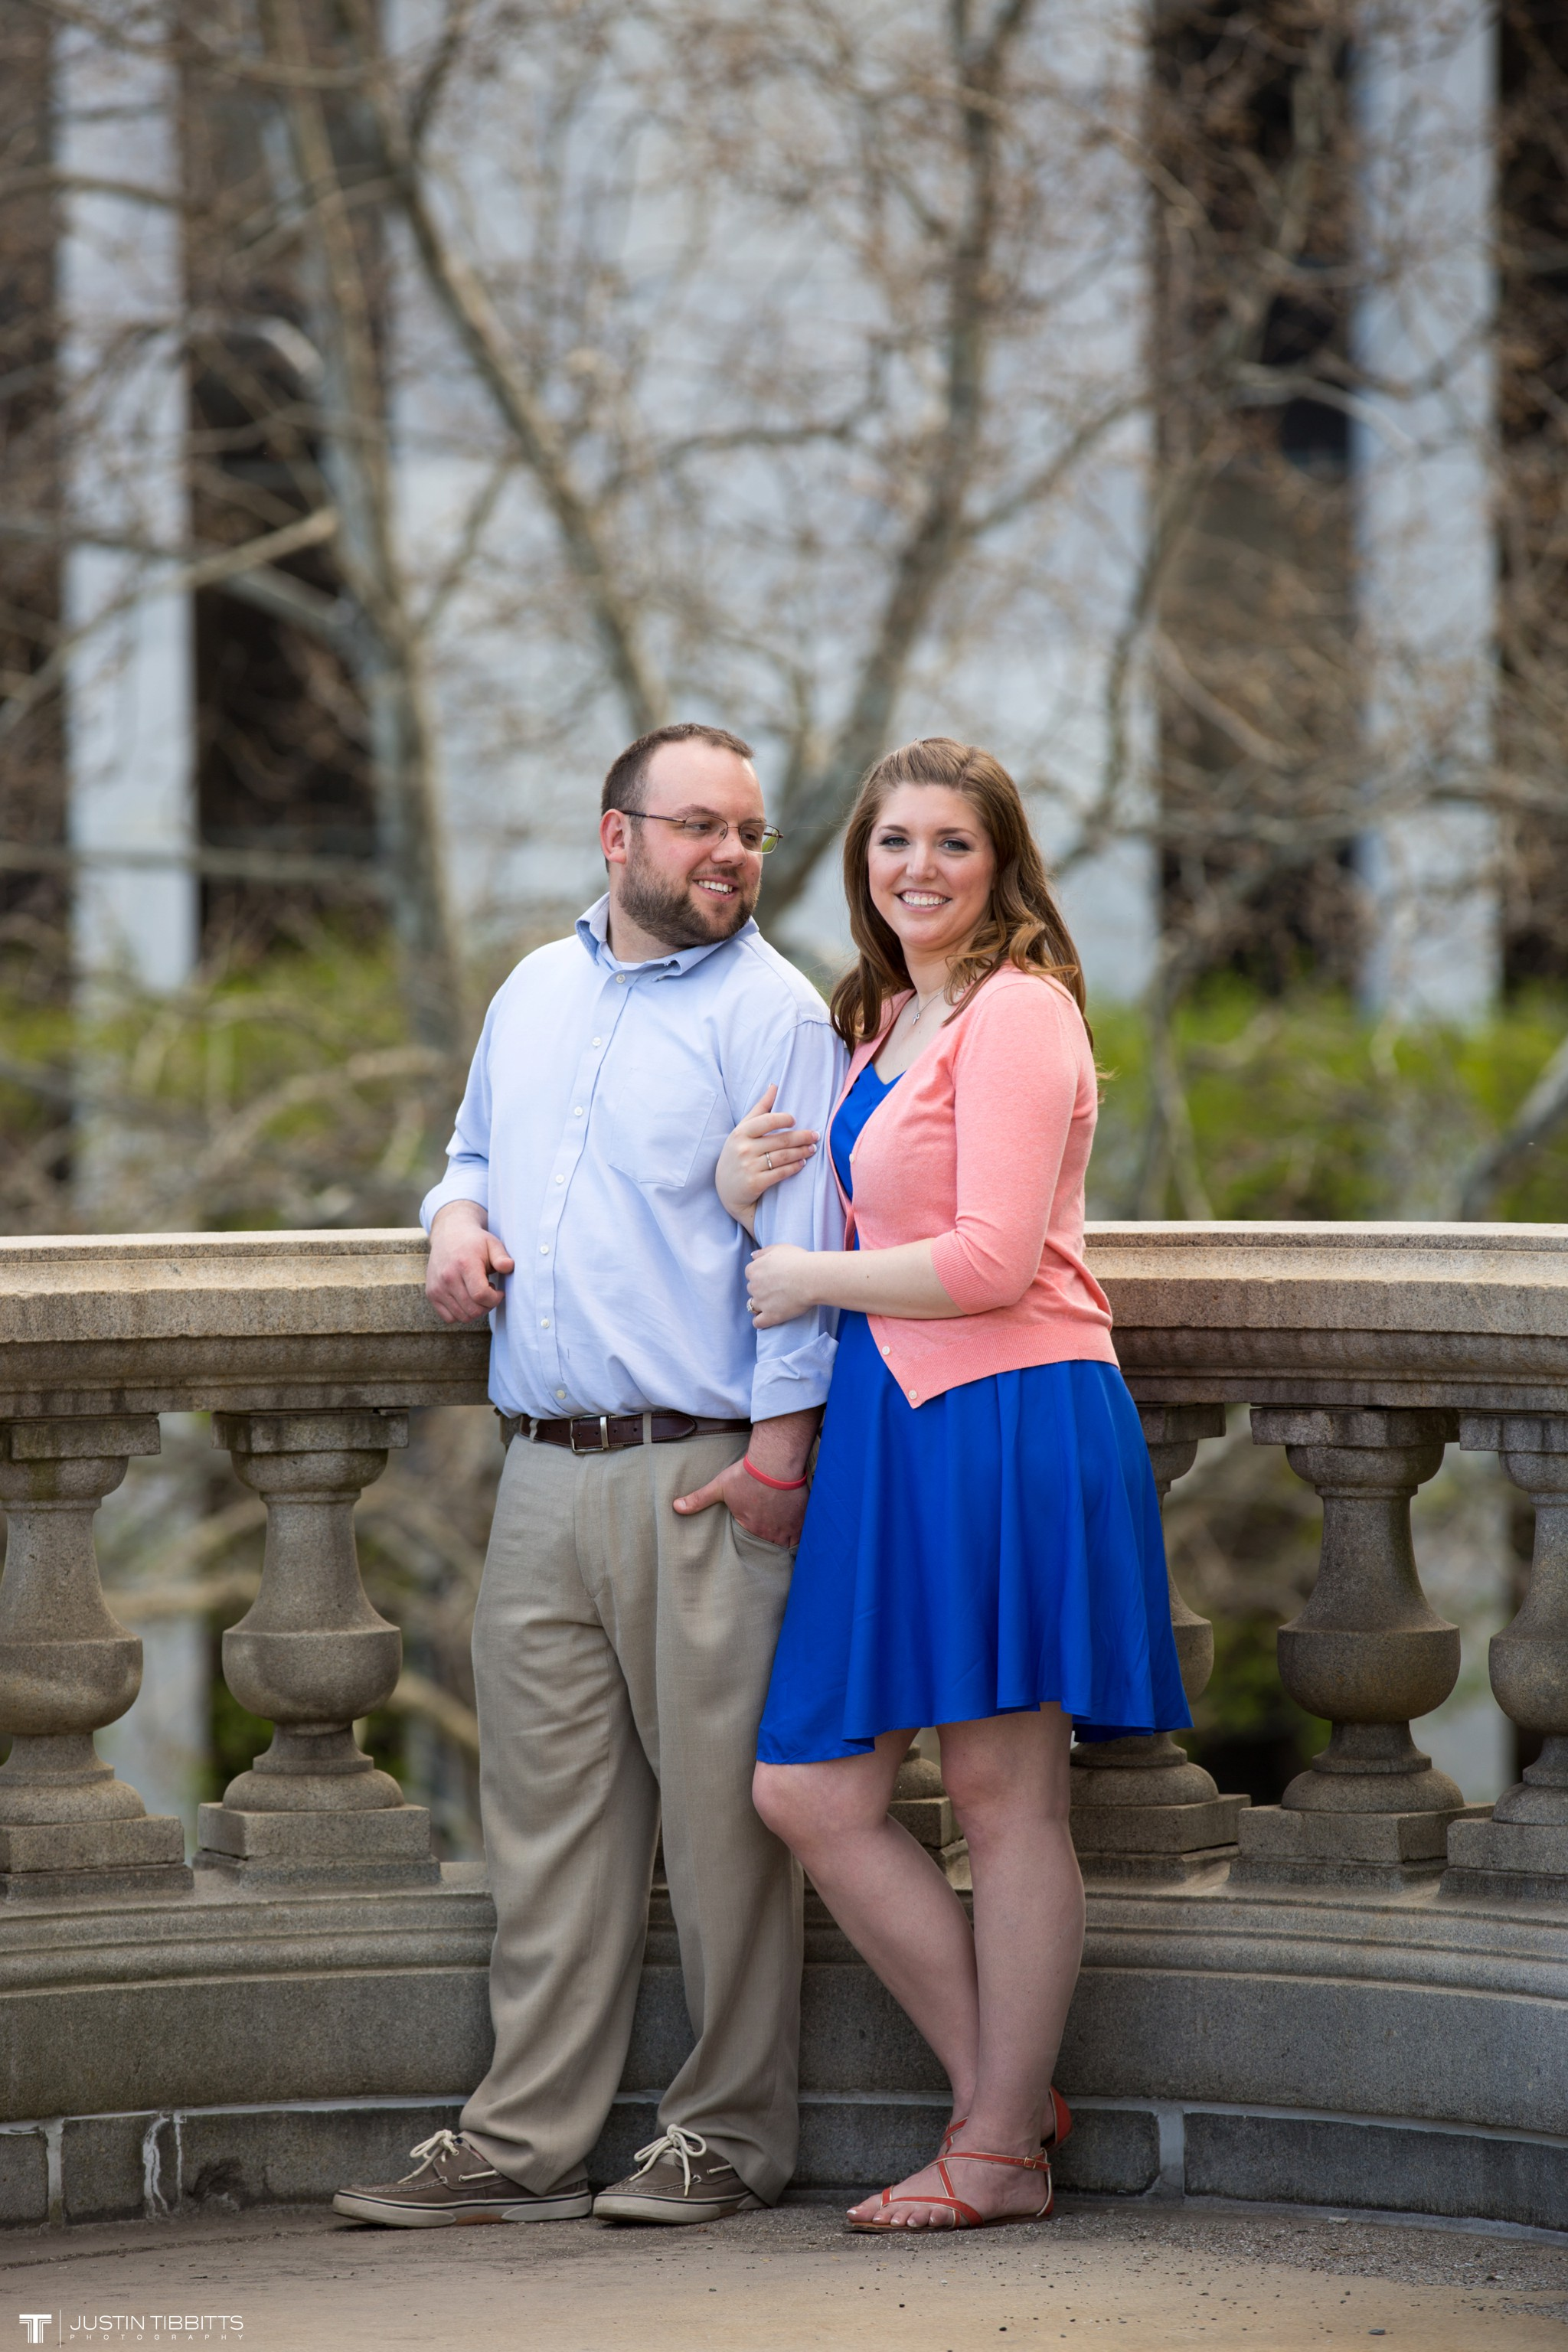 Justin Tibbitts Photography Sara and Erics Albany NY Engagement Photoshoot-32